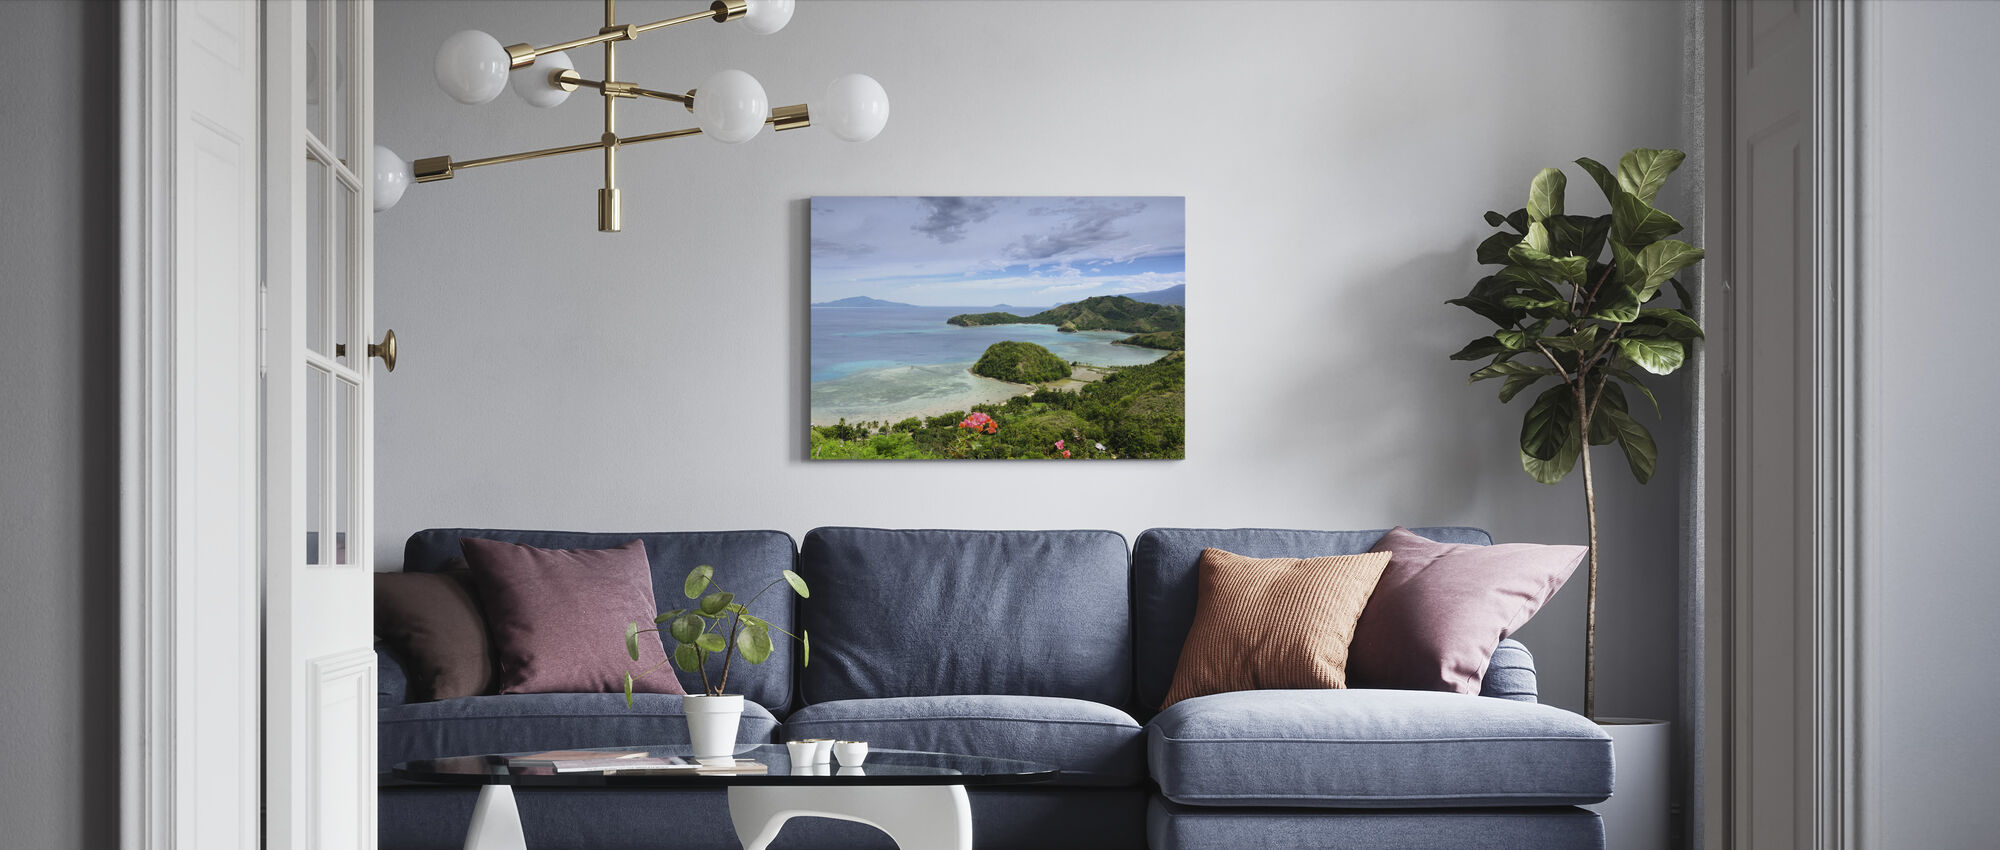 Sleeping Dinosaur in Mati - Canvas print - Living Room